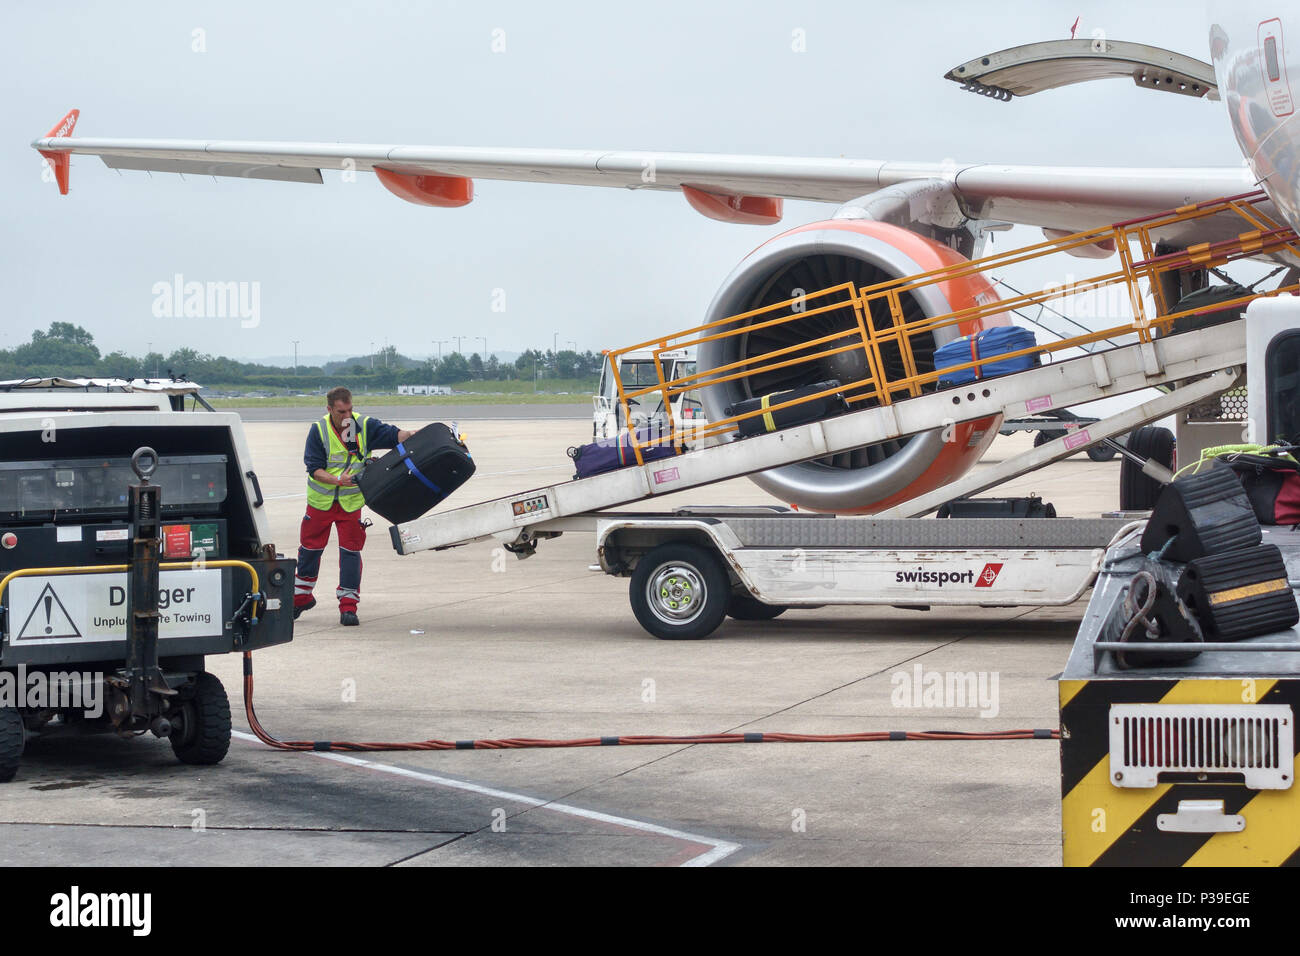 Bristol Airport, UK. A baggage handler loading suitcases onto an Easyjet aircraft - Stock Image